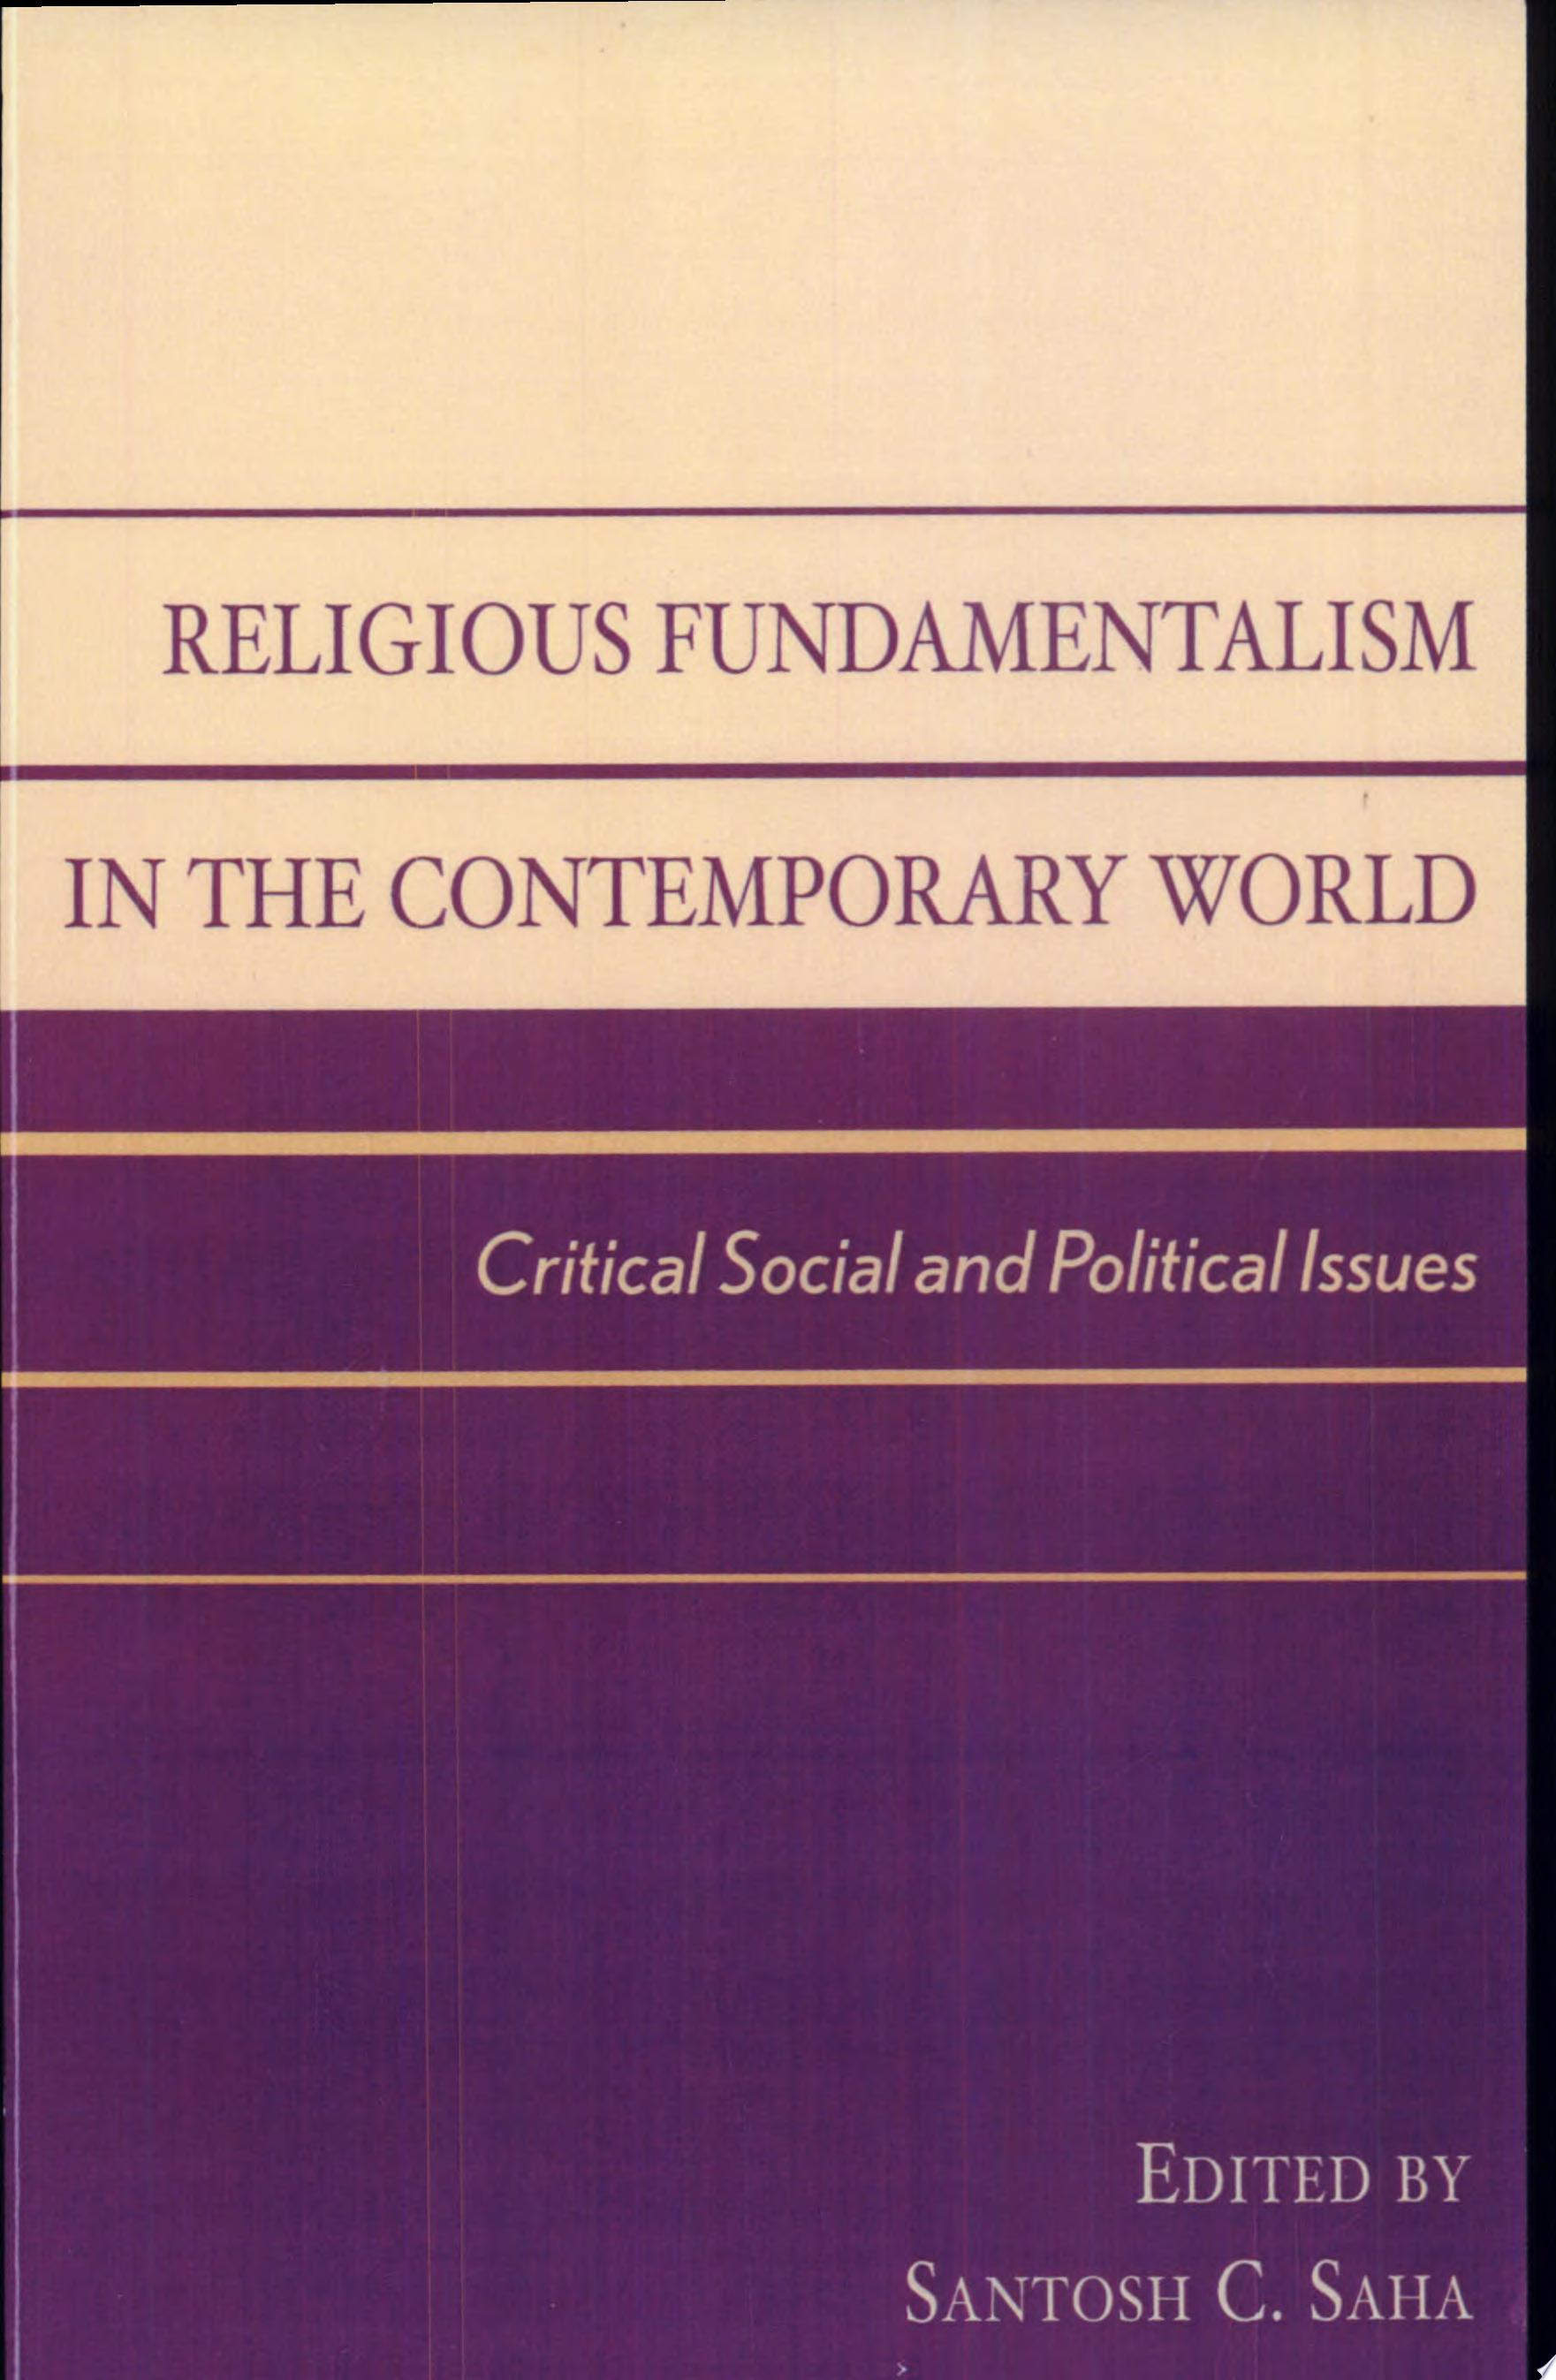 Religious Fundamentalism in the Contemporary World